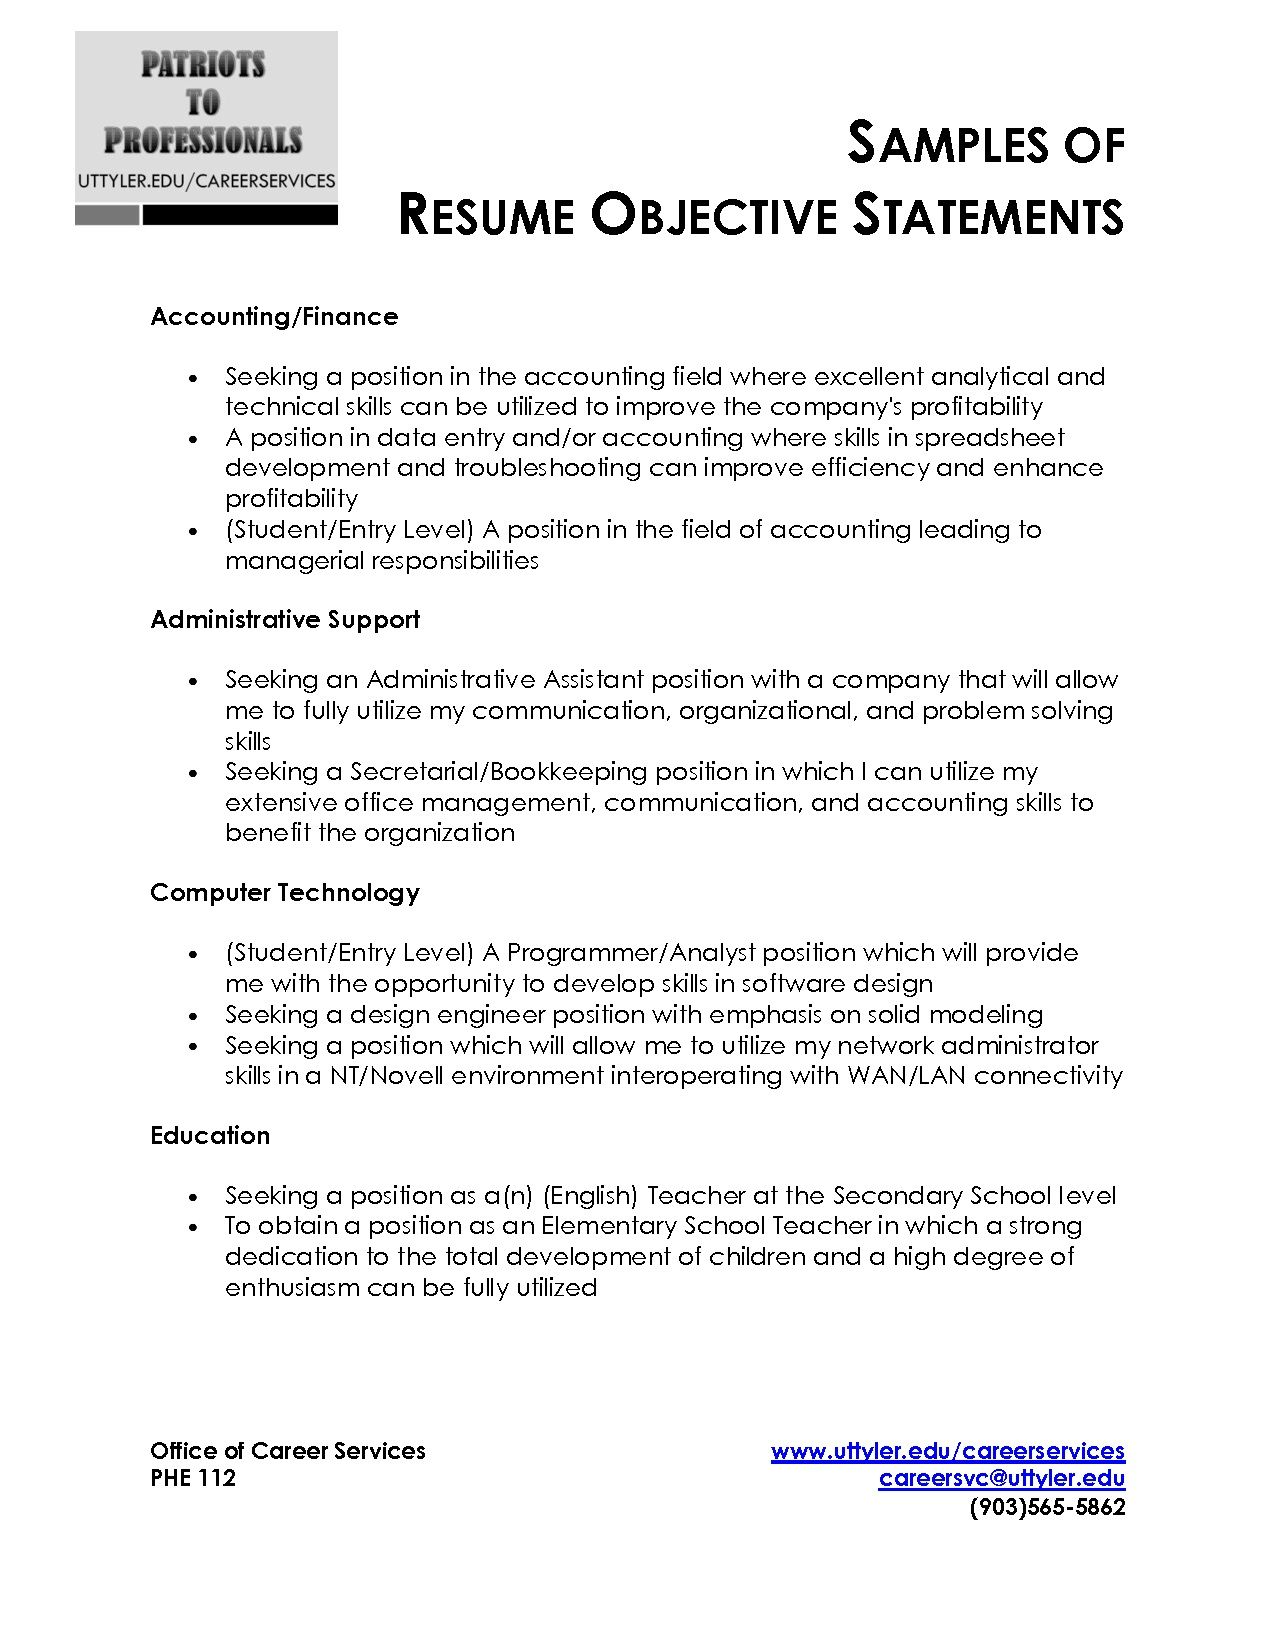 Accounting Resume Objective Sample Resume Objective Statement  Adsbygoogle  Window